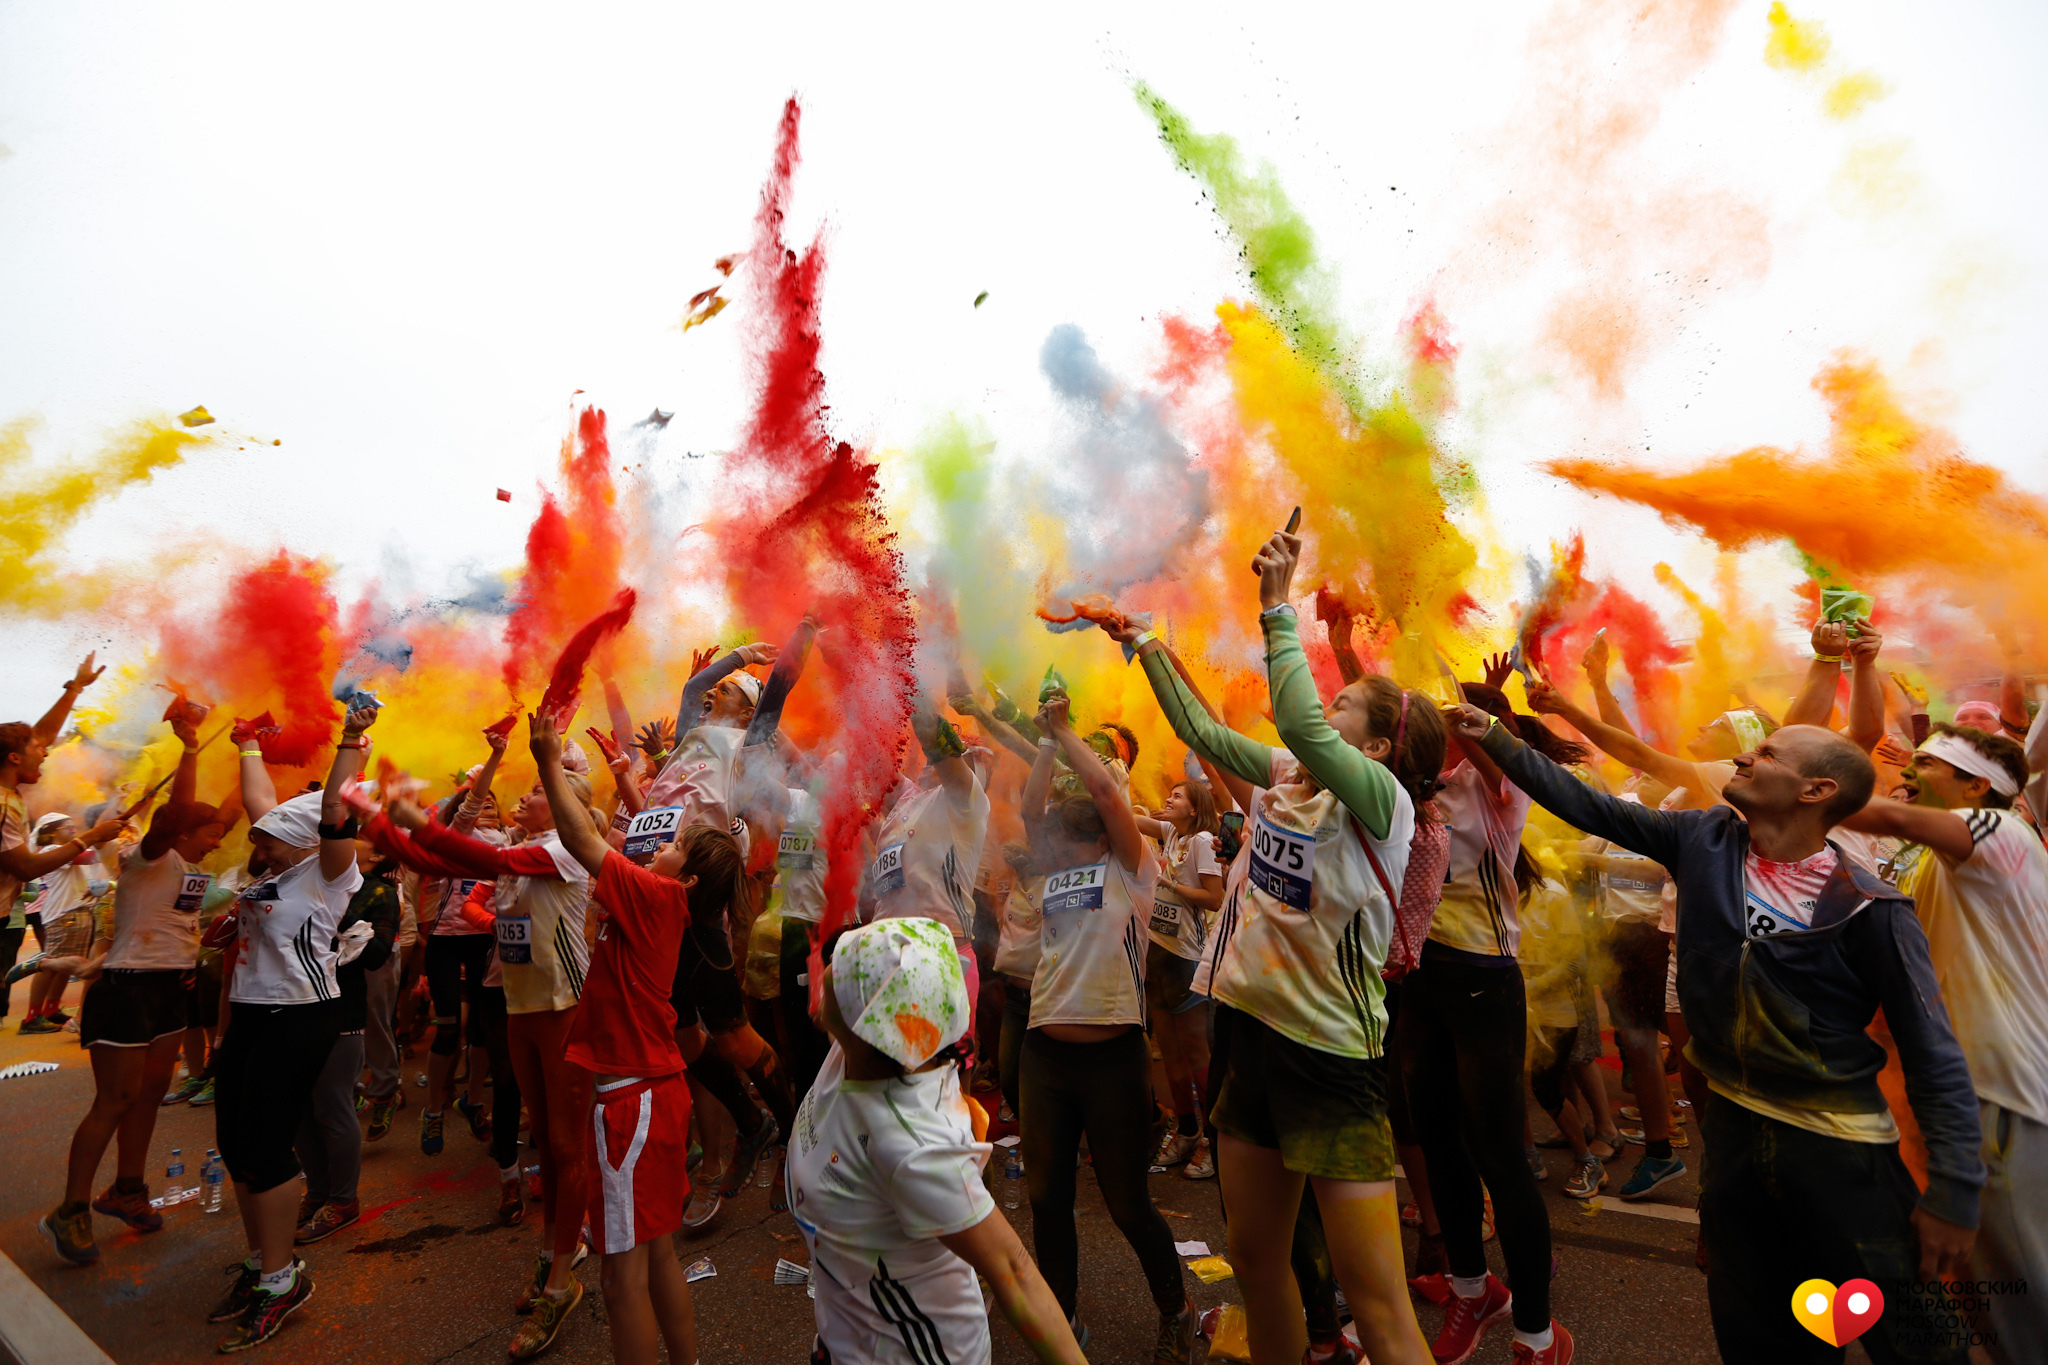 Registration for Colorful Running is open